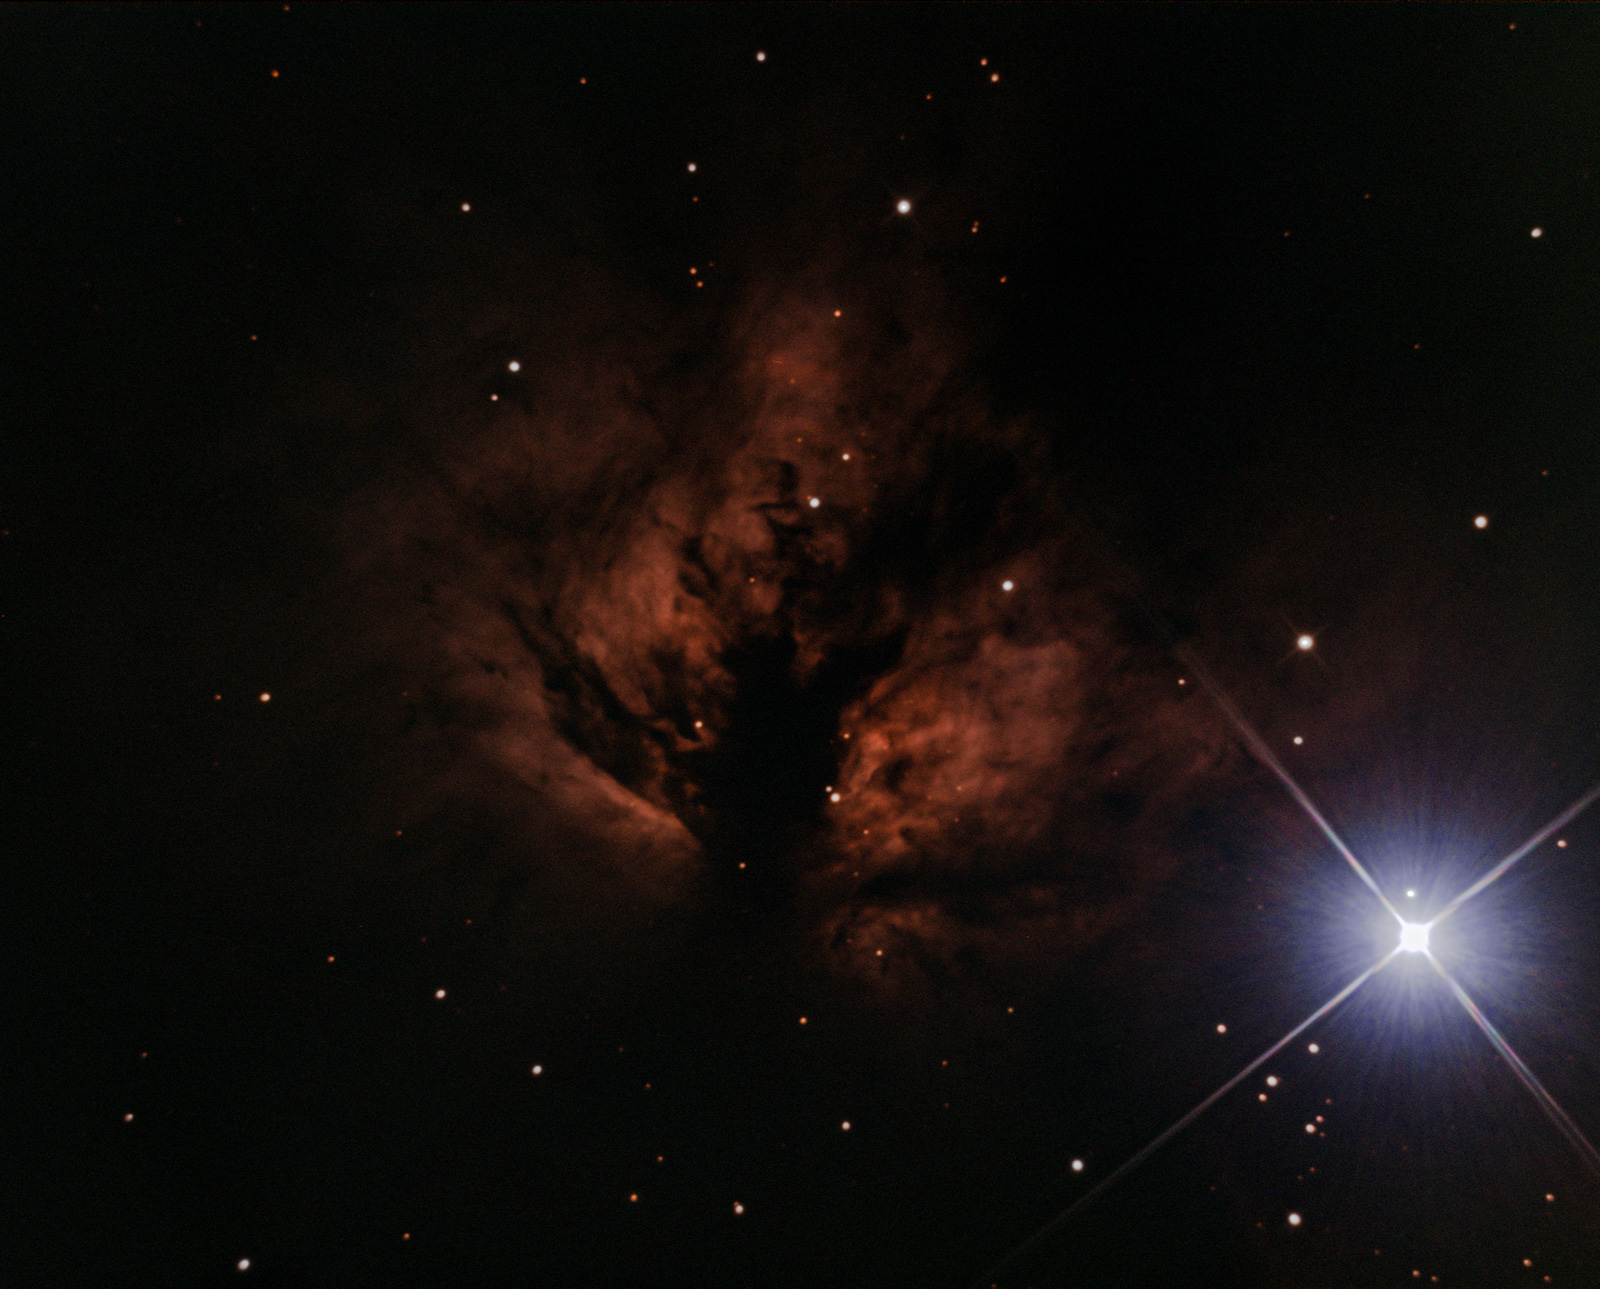 NGC2024 Flame nebula